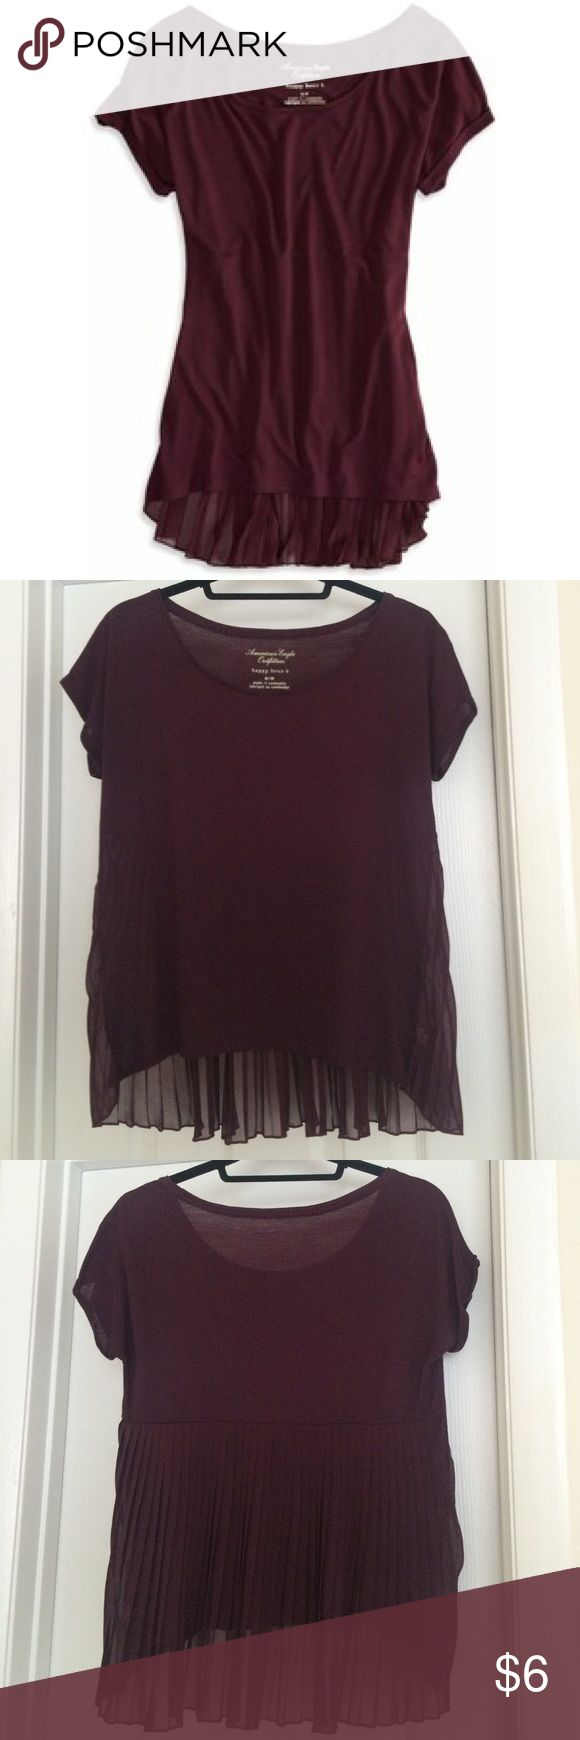 American eagle outfitters happy hour t American eagle outfitters happy hour t, size small, maroon. Flows back, light weight tee, breezy, like new condition American Eagle Outfitters Tops Tees - Short Sleeve